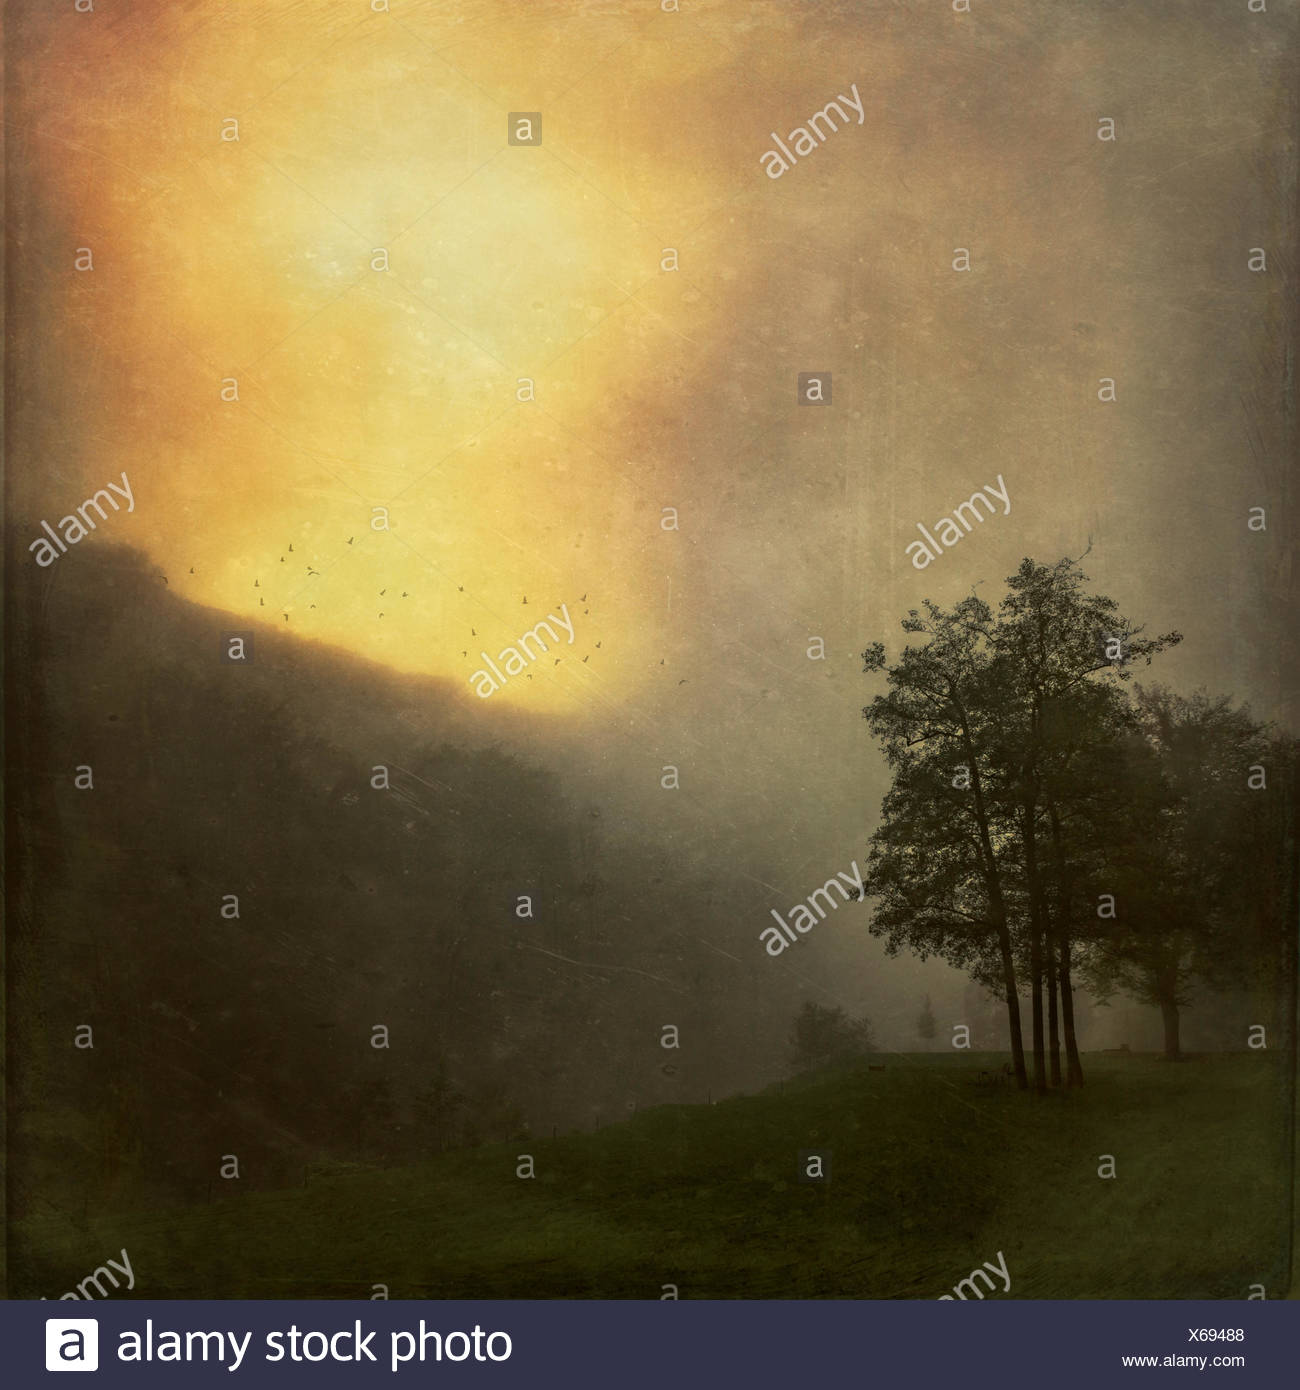 Landscape at sunrise in the fog, textured effect - Stock Image